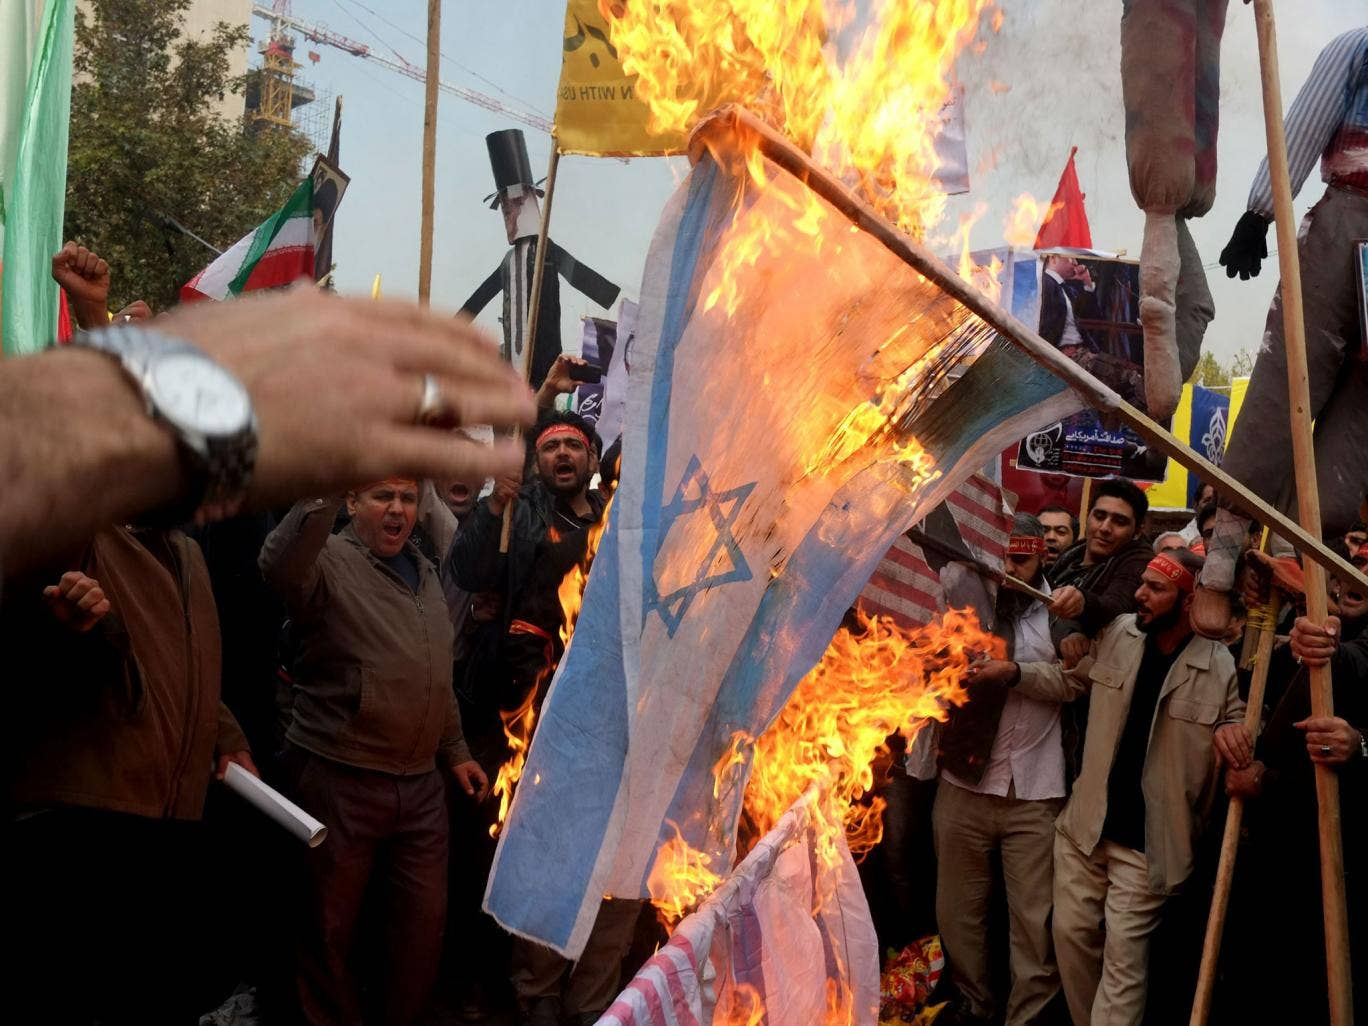 People burn Israel and U.S. flags a demonstration to mark the 34th anniversary of the 1979 US embassy takeover